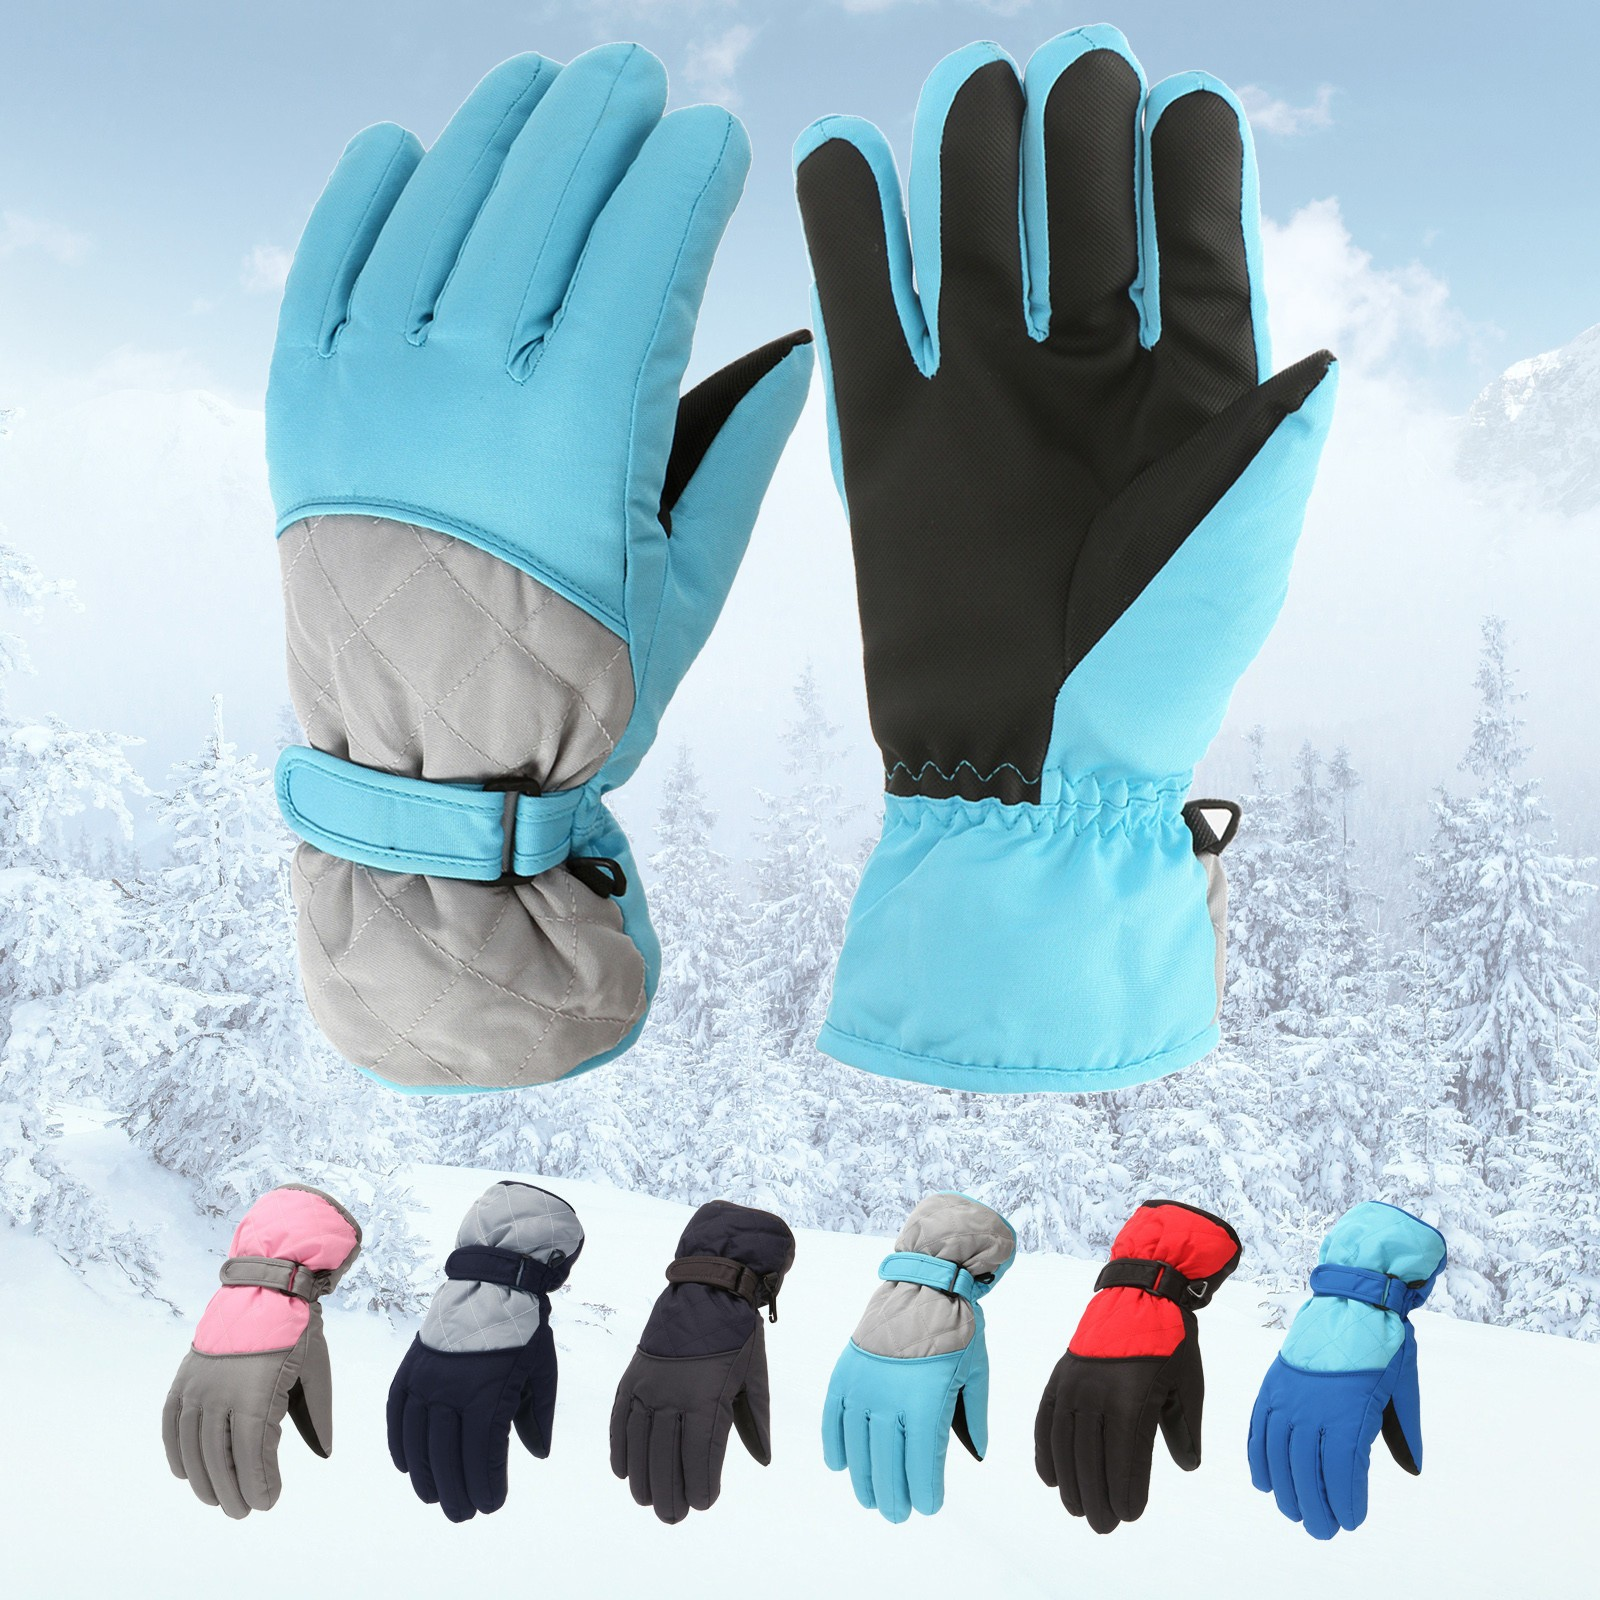 Waterproof Winter Skiing Snowboarding Gloves Warm Mittens For Kids Boys Girls Full-Finger Gloves Strap For Sports Skiing Cycling